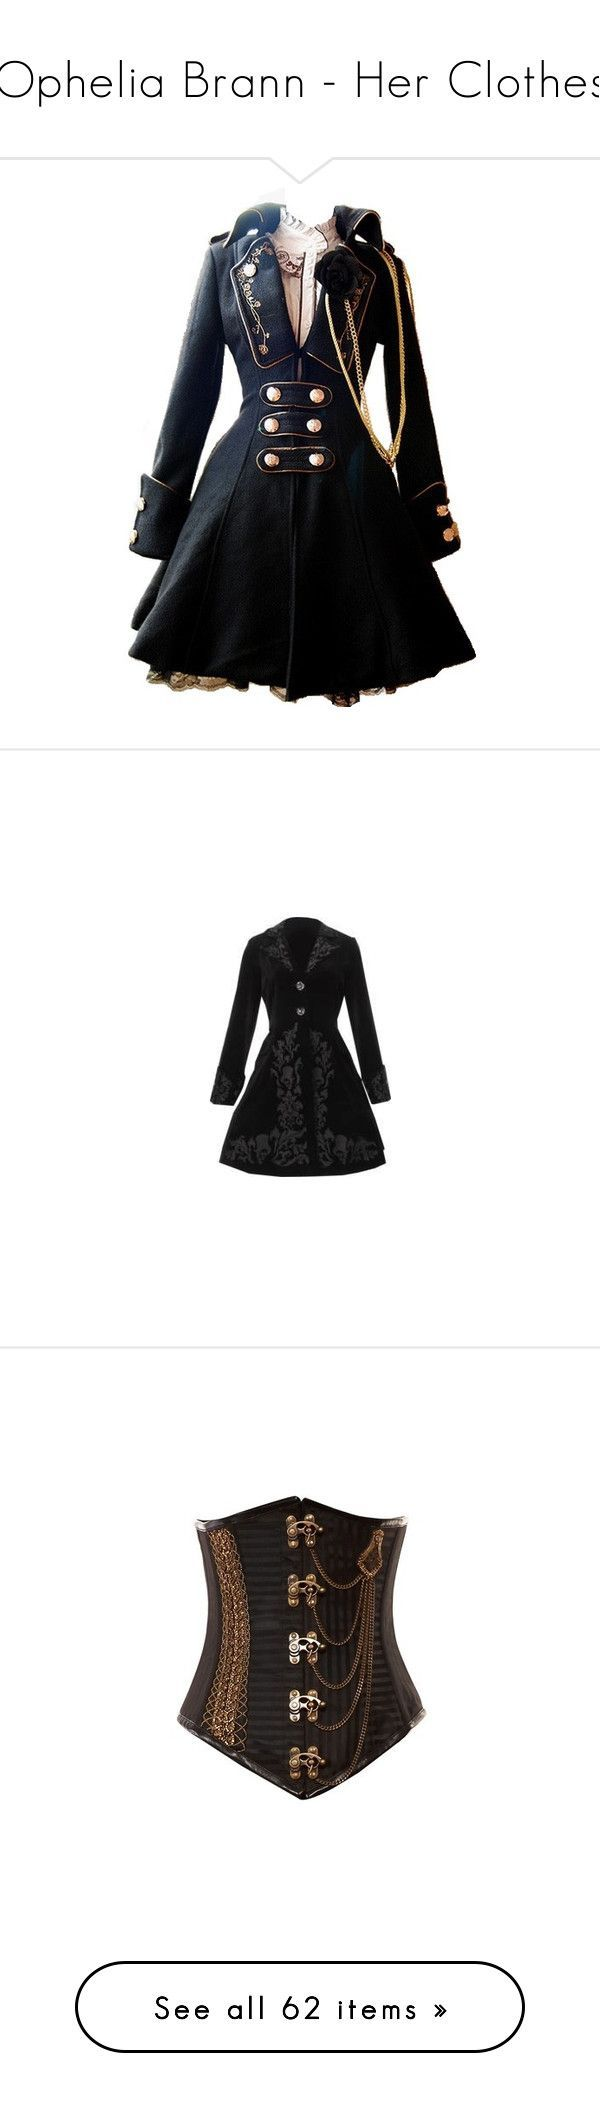 Ophelia Brann - Her Clothes by hecate-supreme ❤ liked on Polyvore featuring dresses, jackets, coats, steampunk, outerwear, gothic velvet coat, velvet dress coat, goth coat, victorian coat and hell bunny